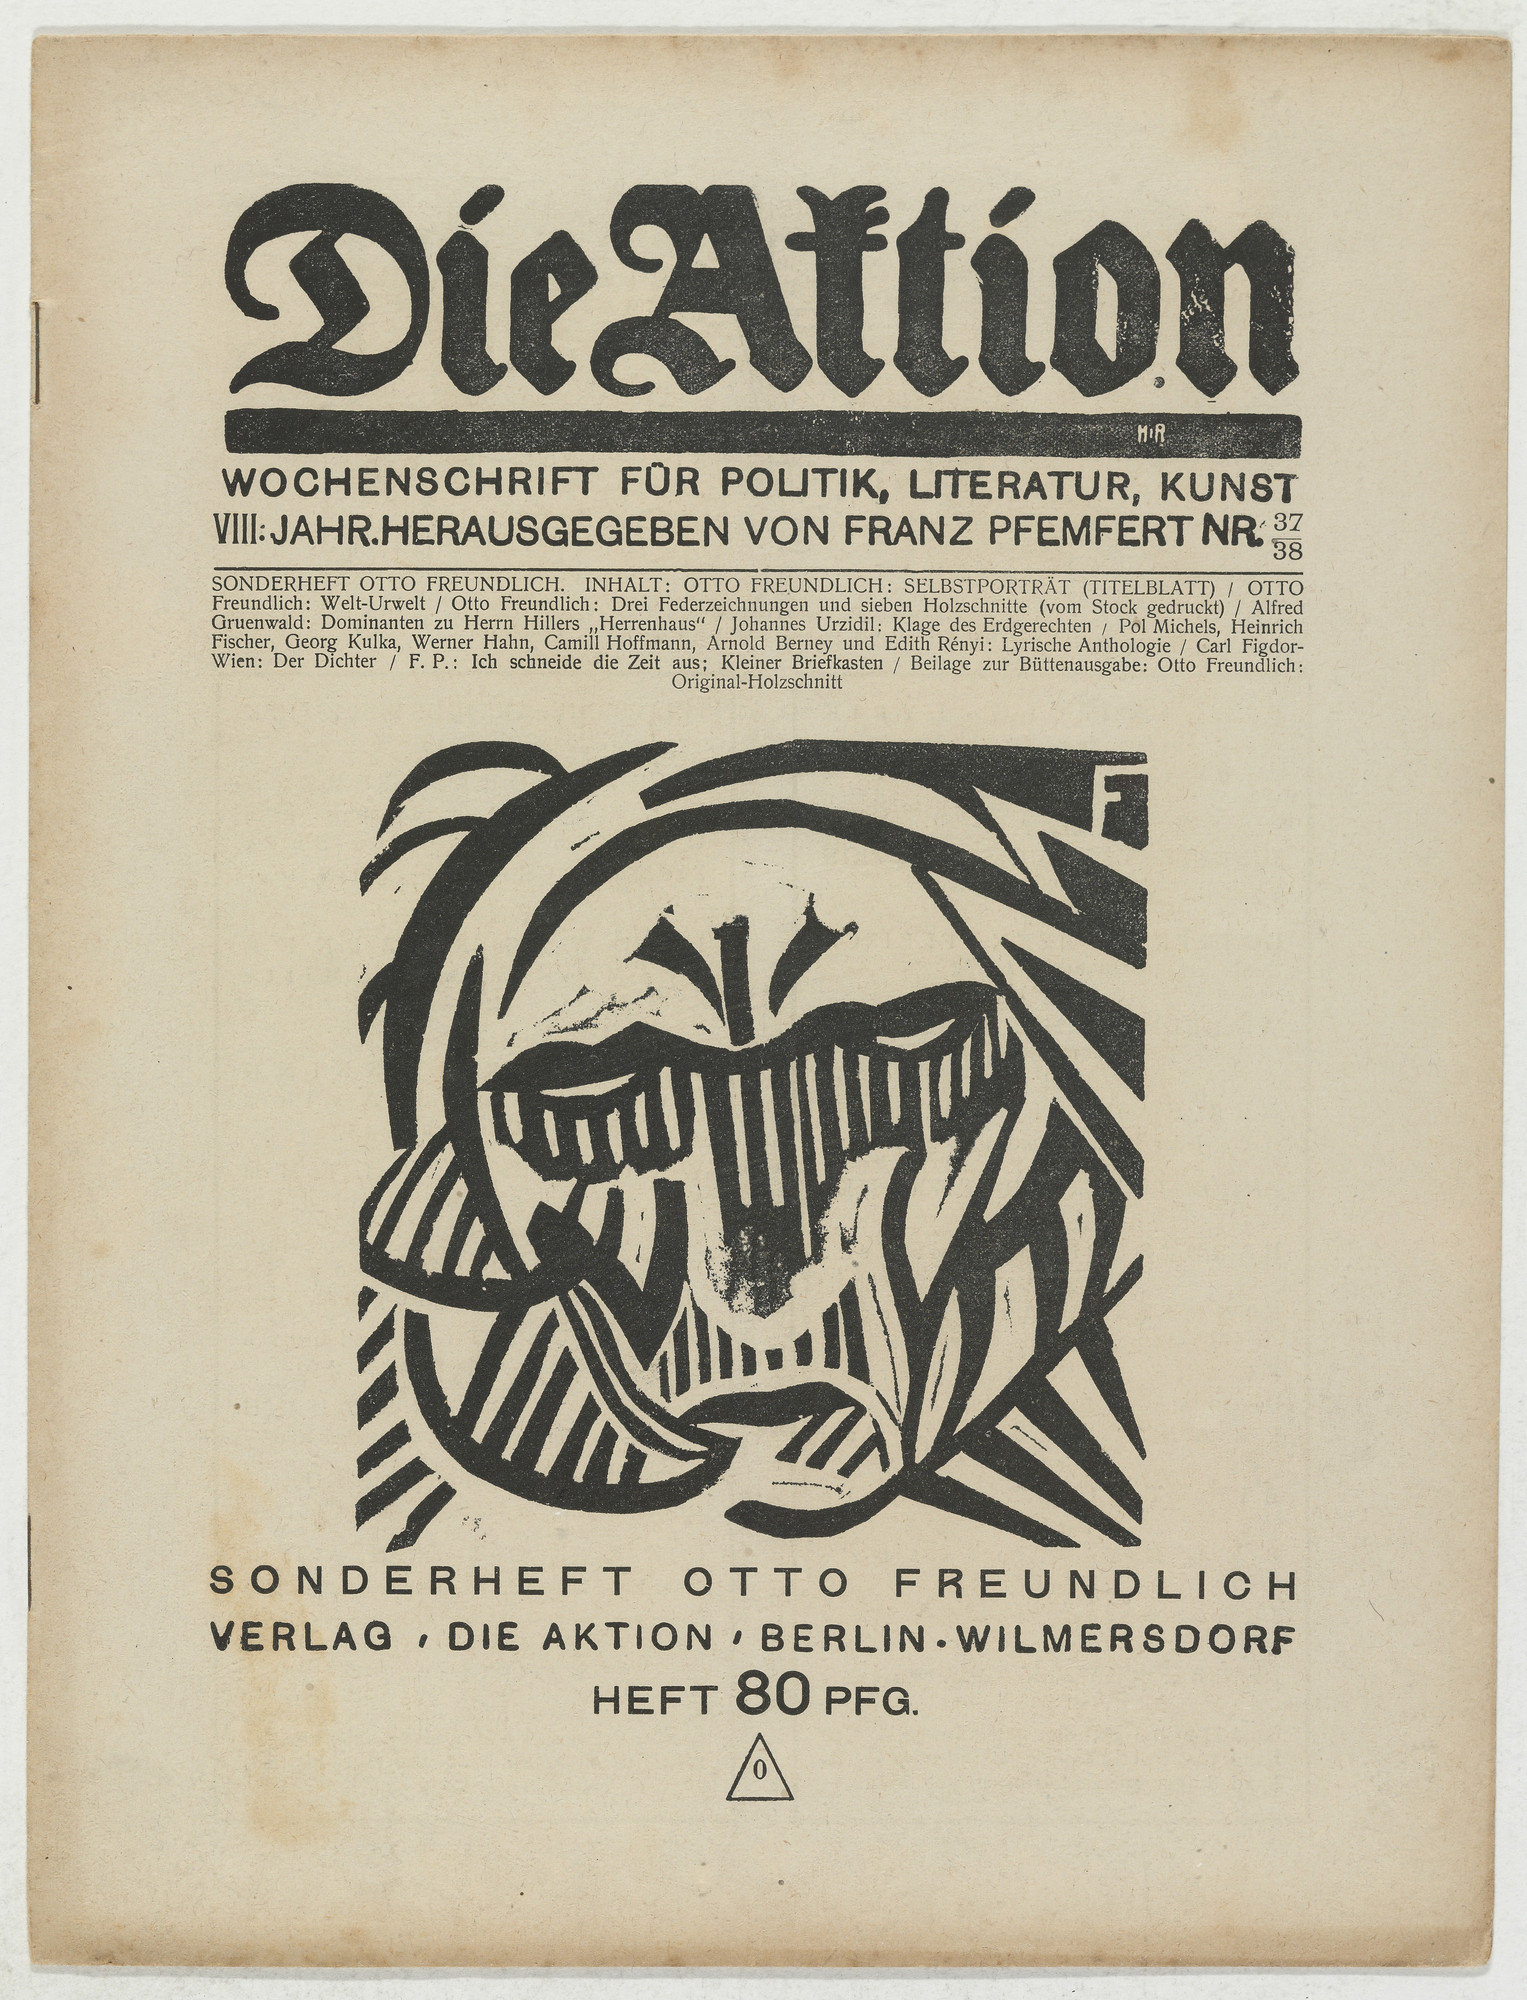 Otto Freundlich. Die Aktion, vol. 8, no. 37⁄38. September 21, 1918